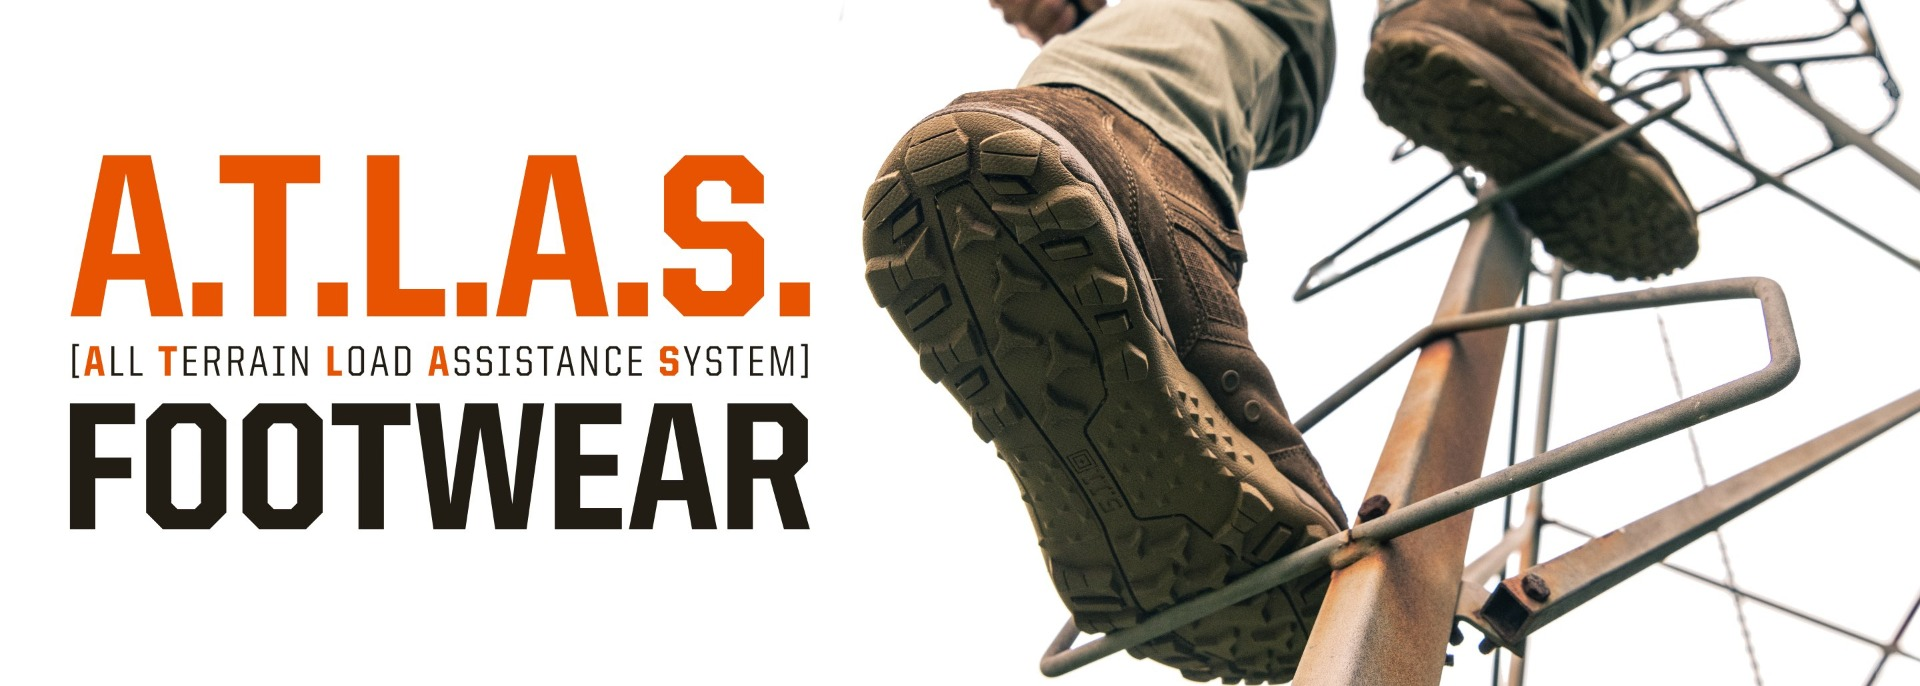 5.11 A.T.L.A.S. (All Terrain Load Assistence System) Footwear